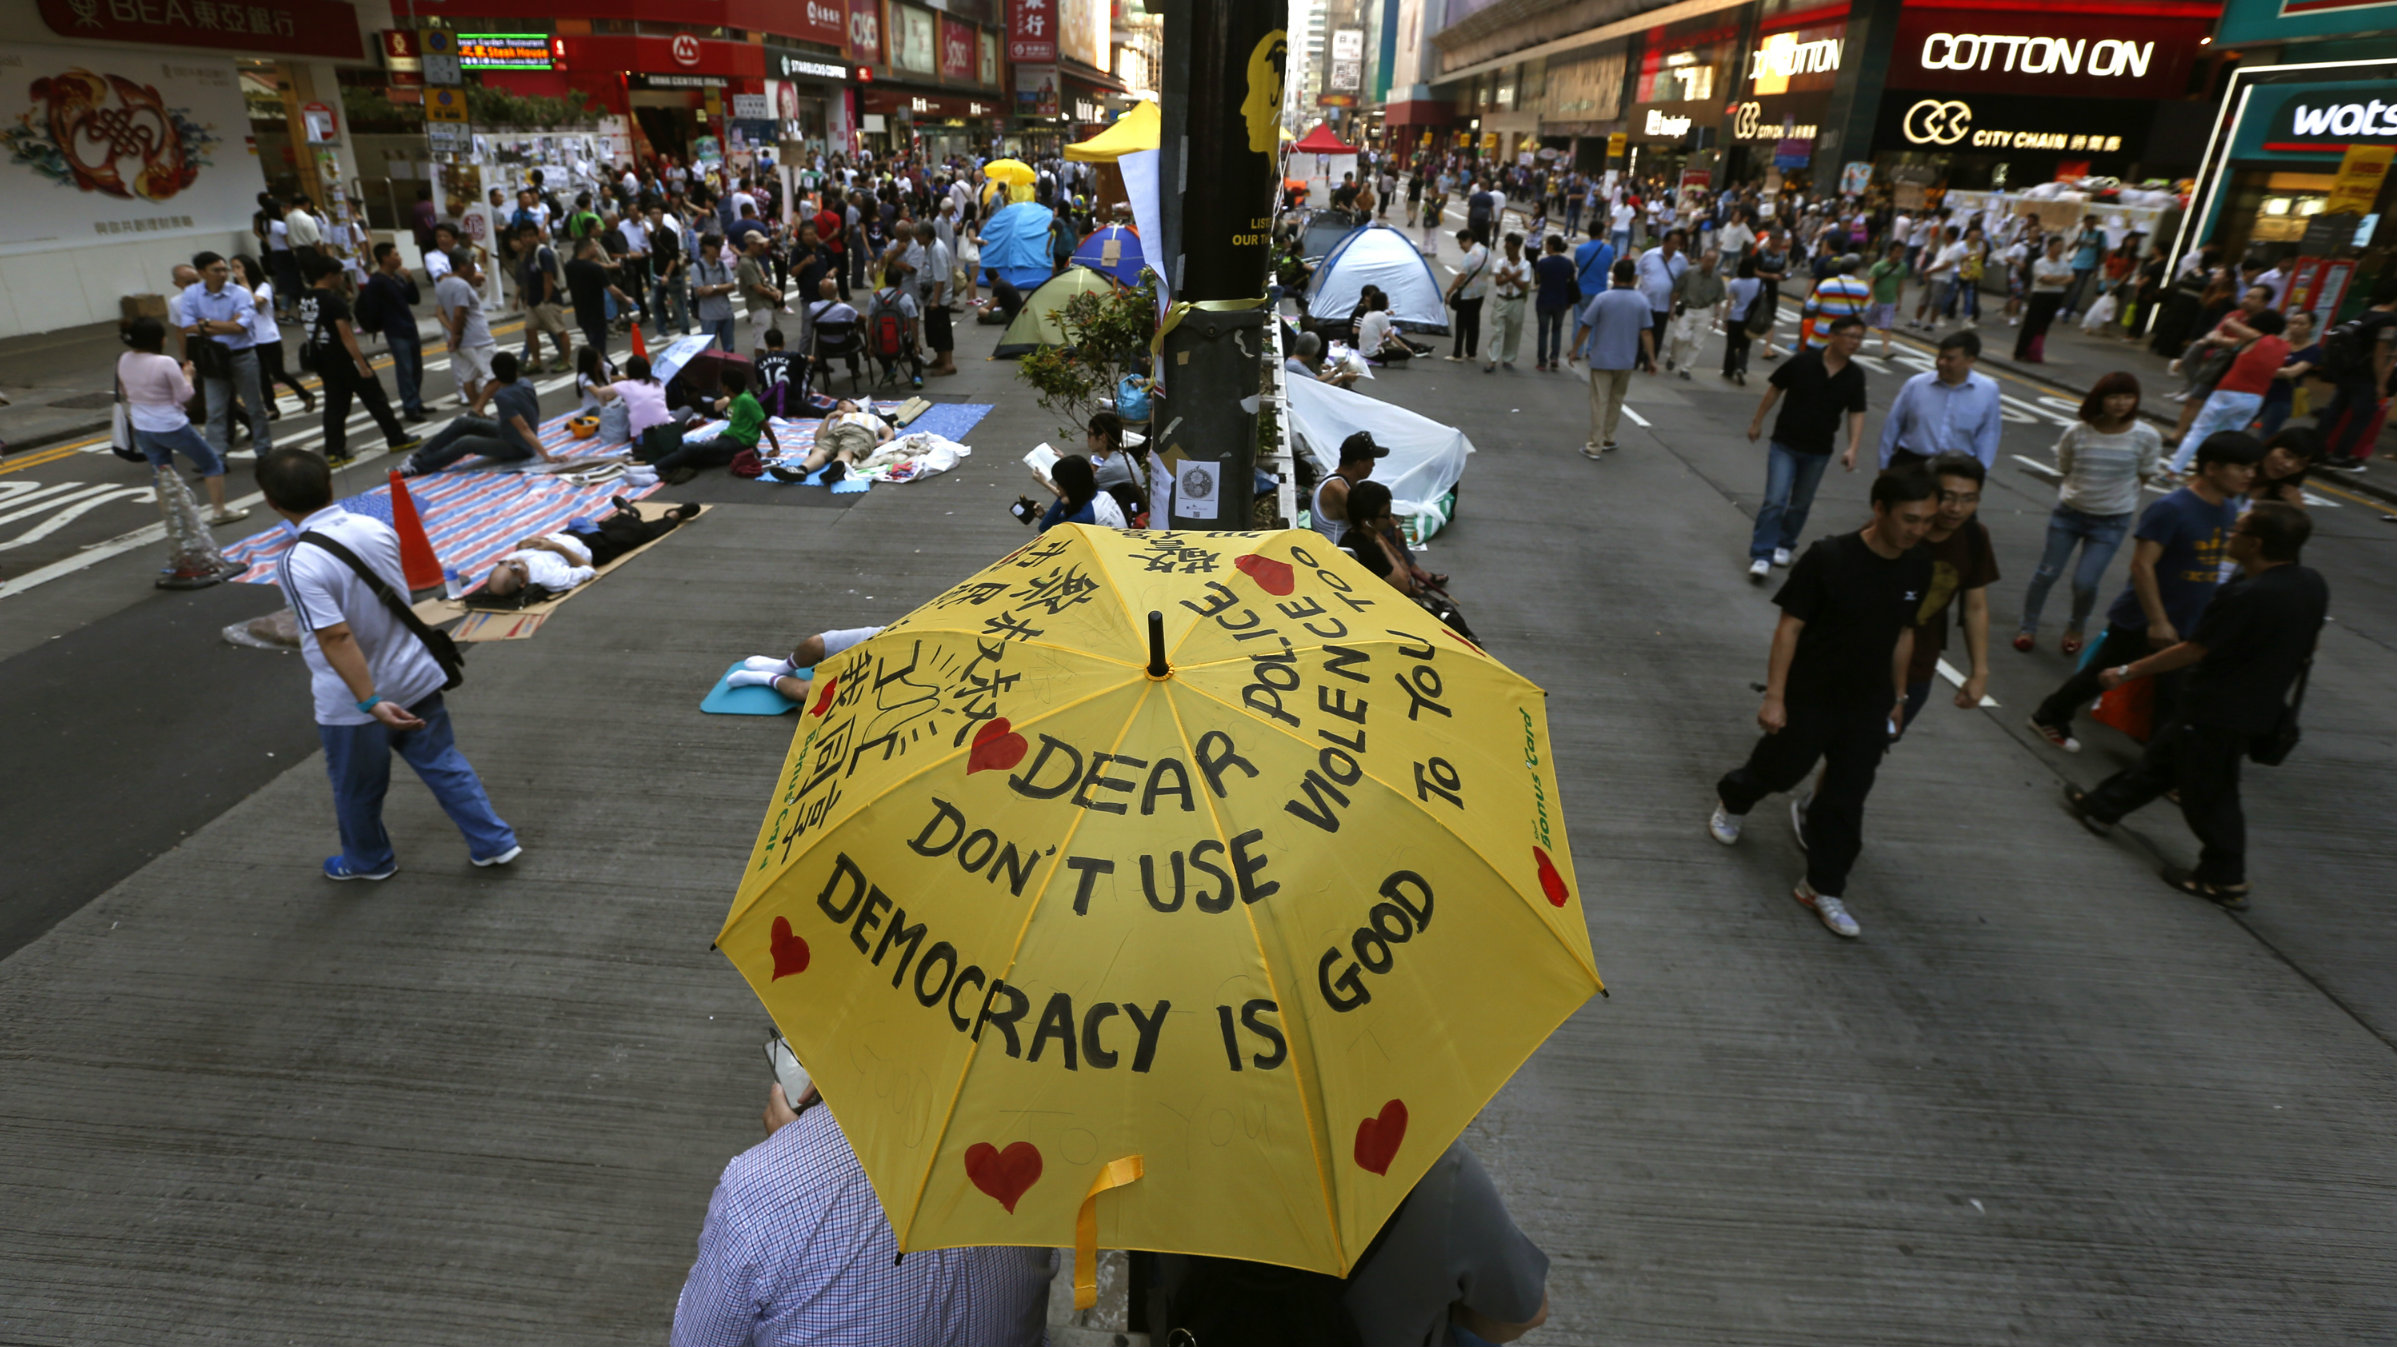 Pro democracy protesters in Hong Kong sit under a yellow umbrella.